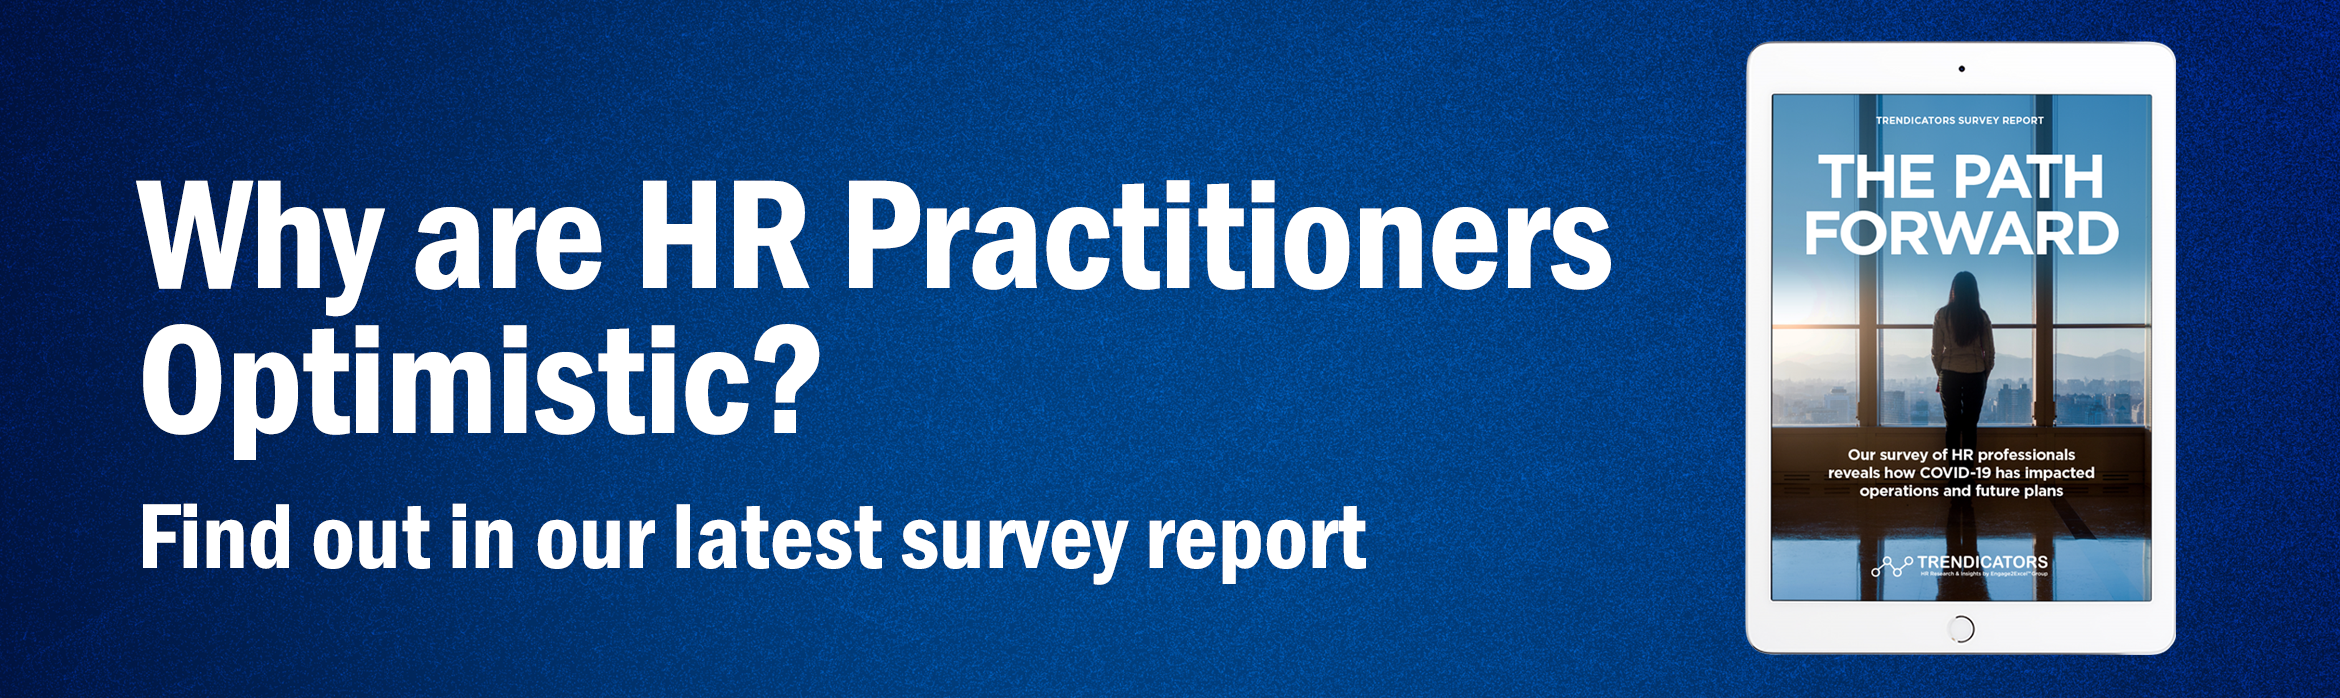 Why Are HR Practitioners Optimistic? Find out in our latest survey report.